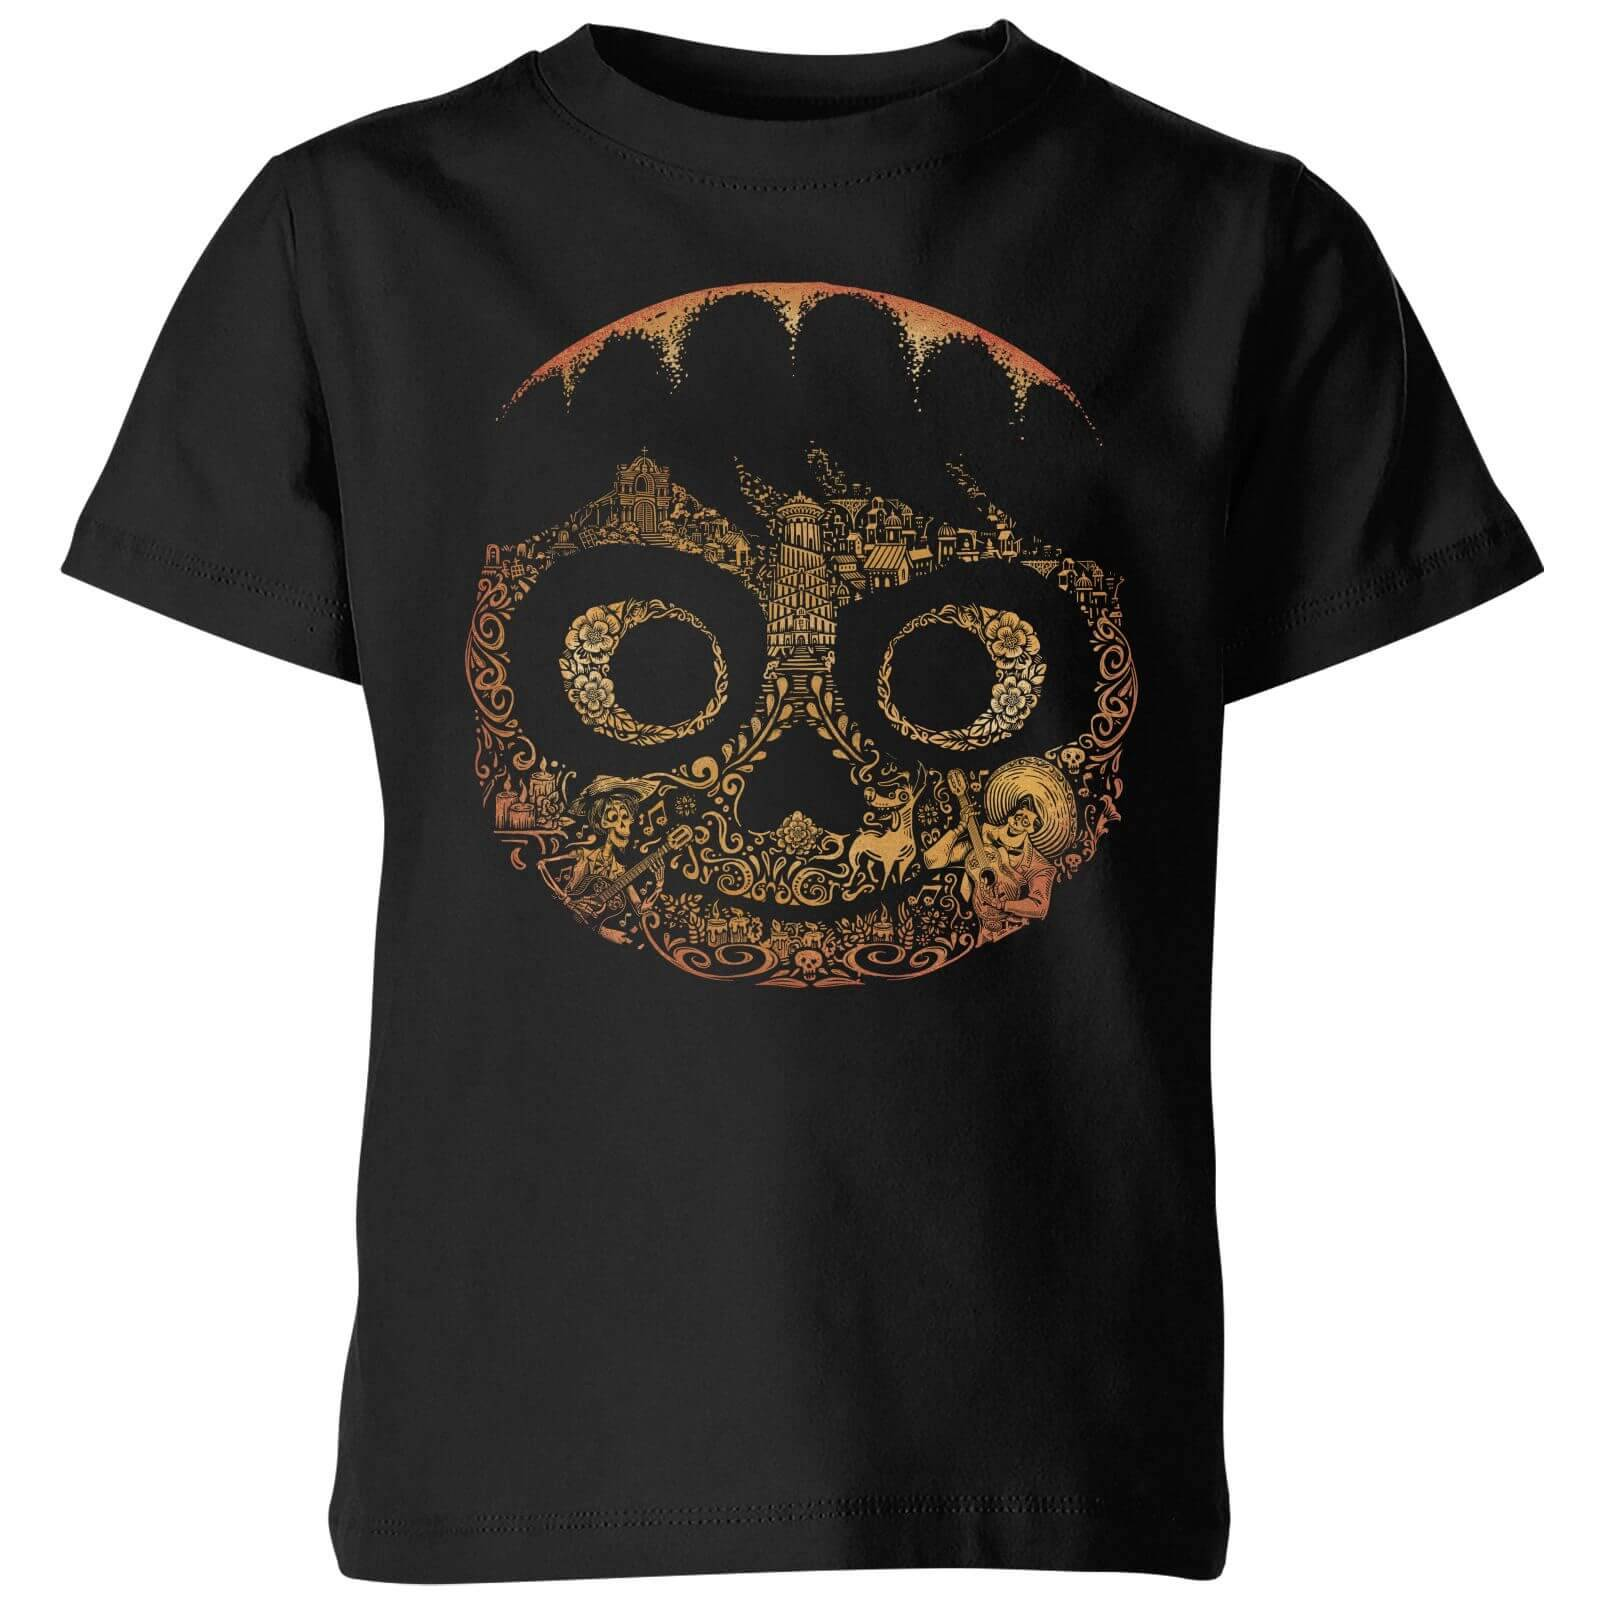 Disney Coco Miguel Face Kids' T-Shirt - Black - 7-8 Years - Black